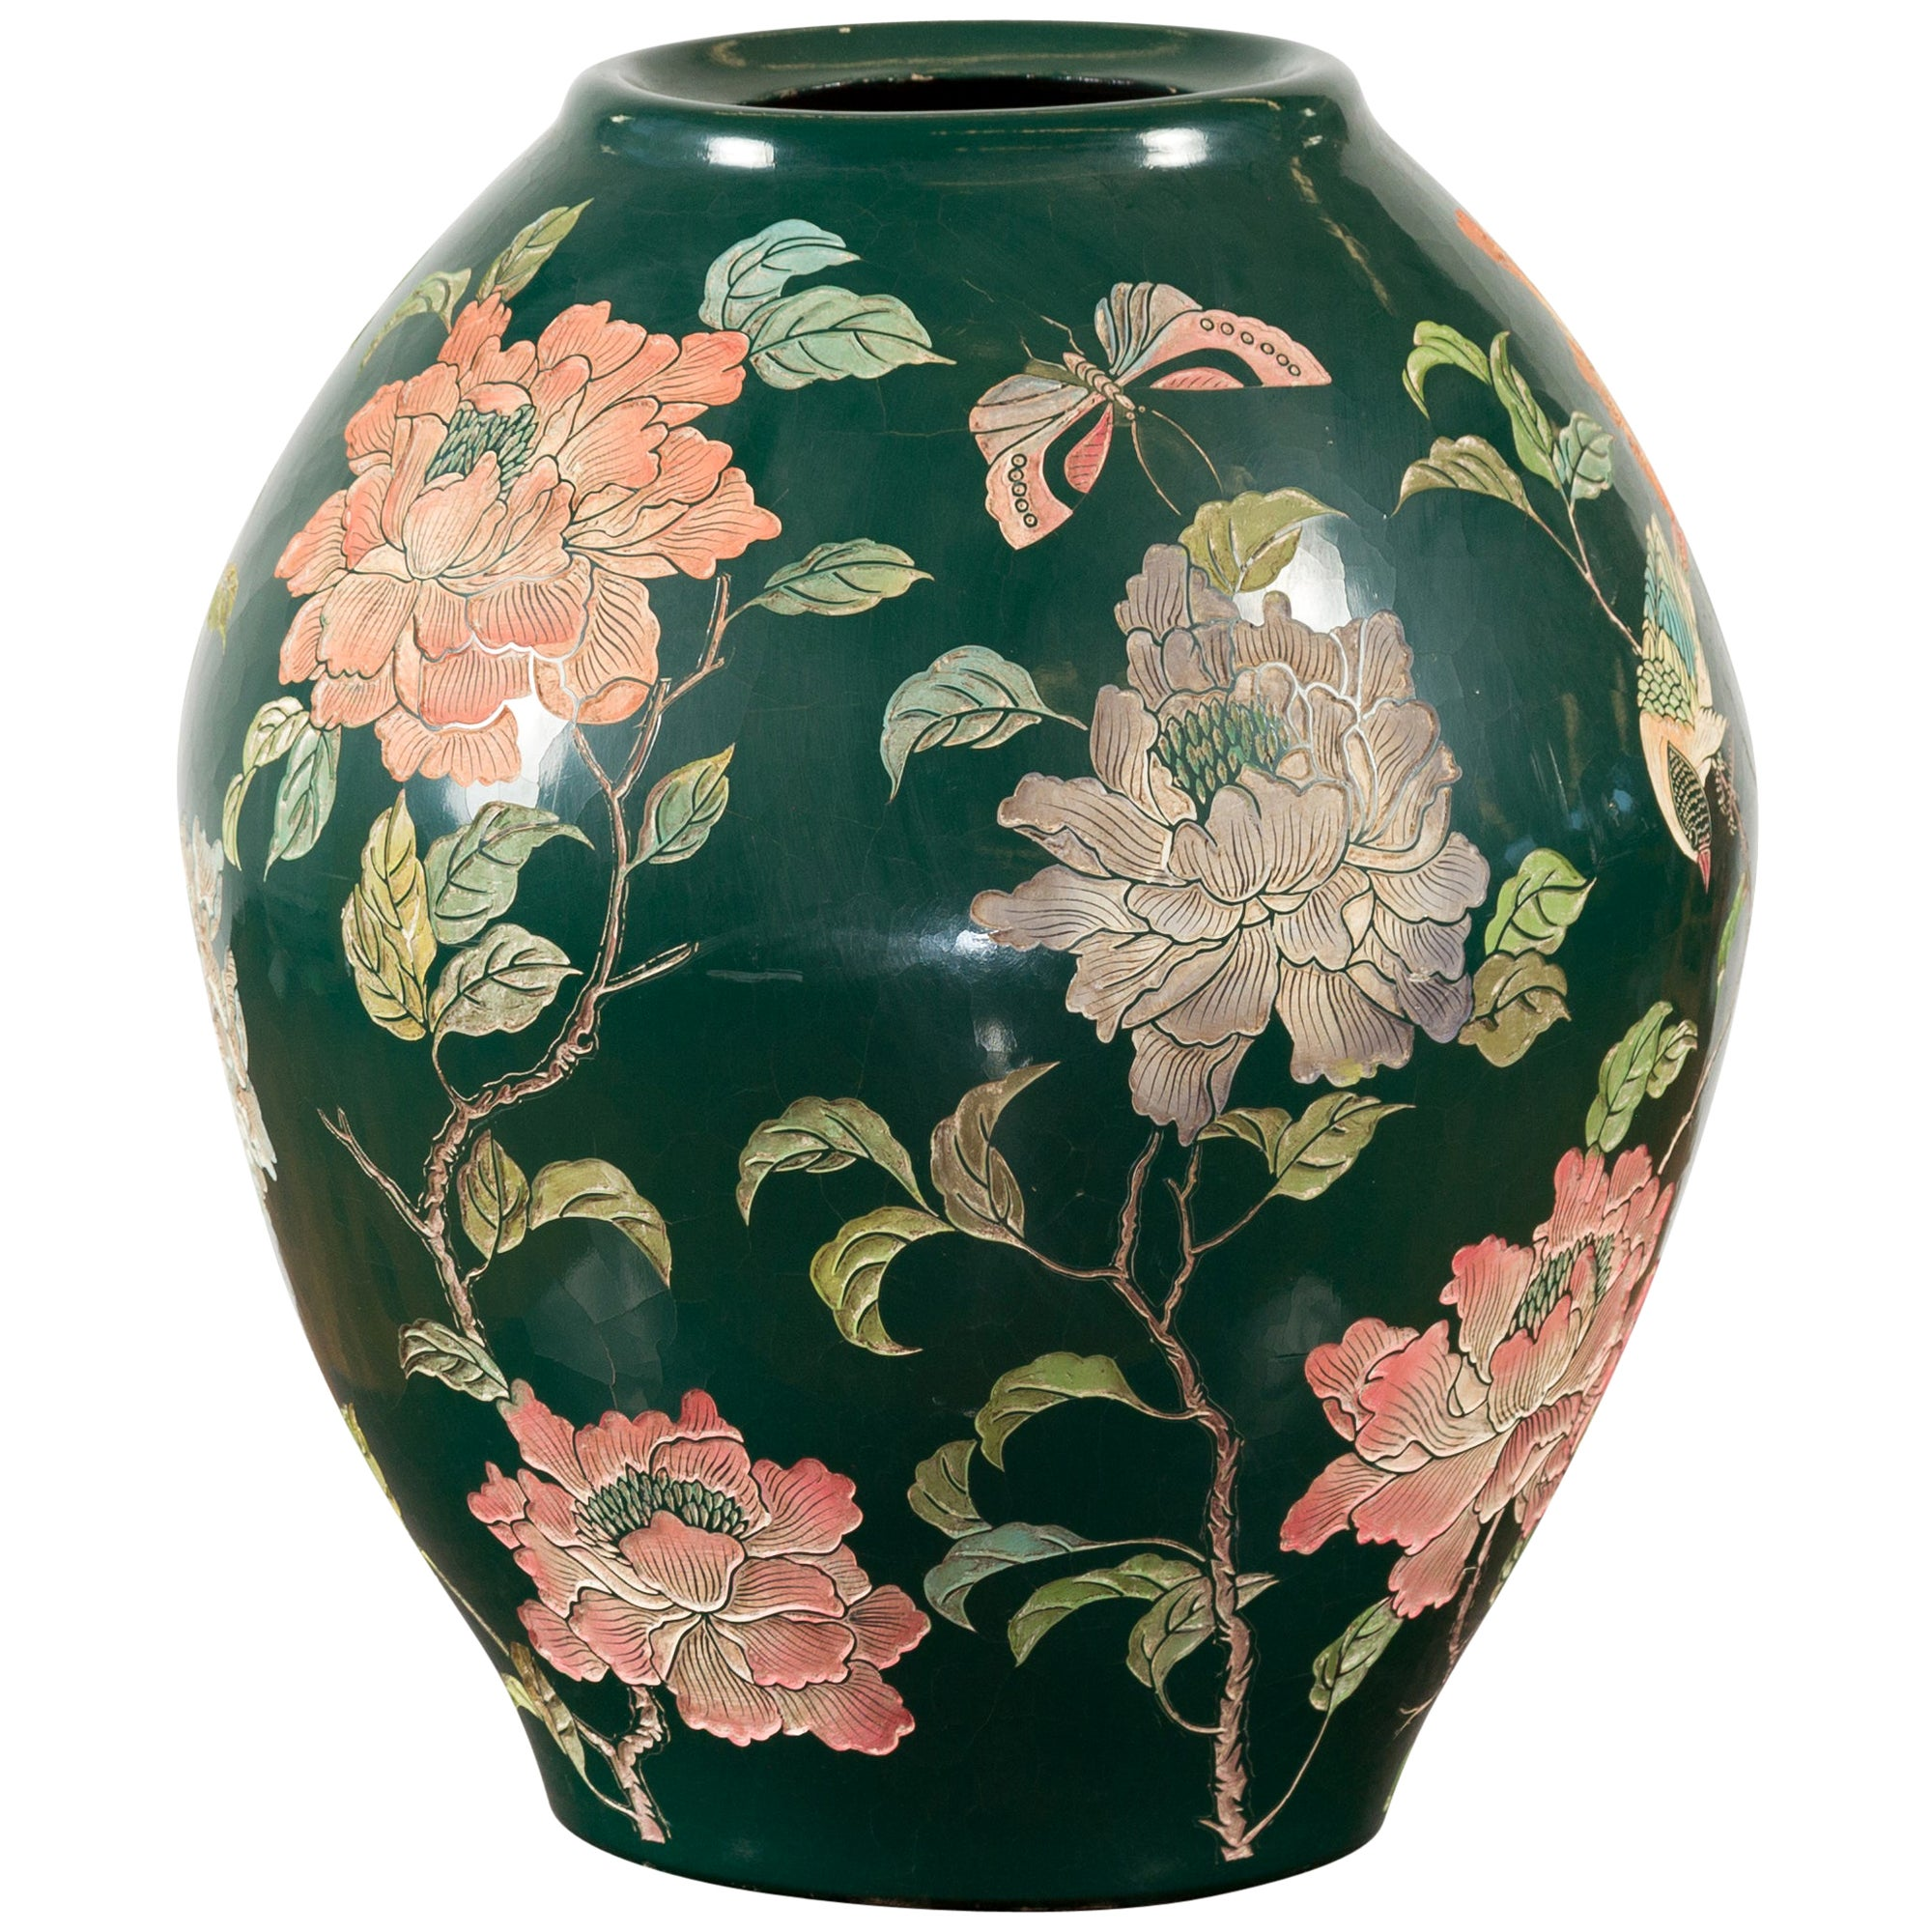 Vintage Chinese Handcrafted Green Vase with Incised Floral and Butterfly Decor